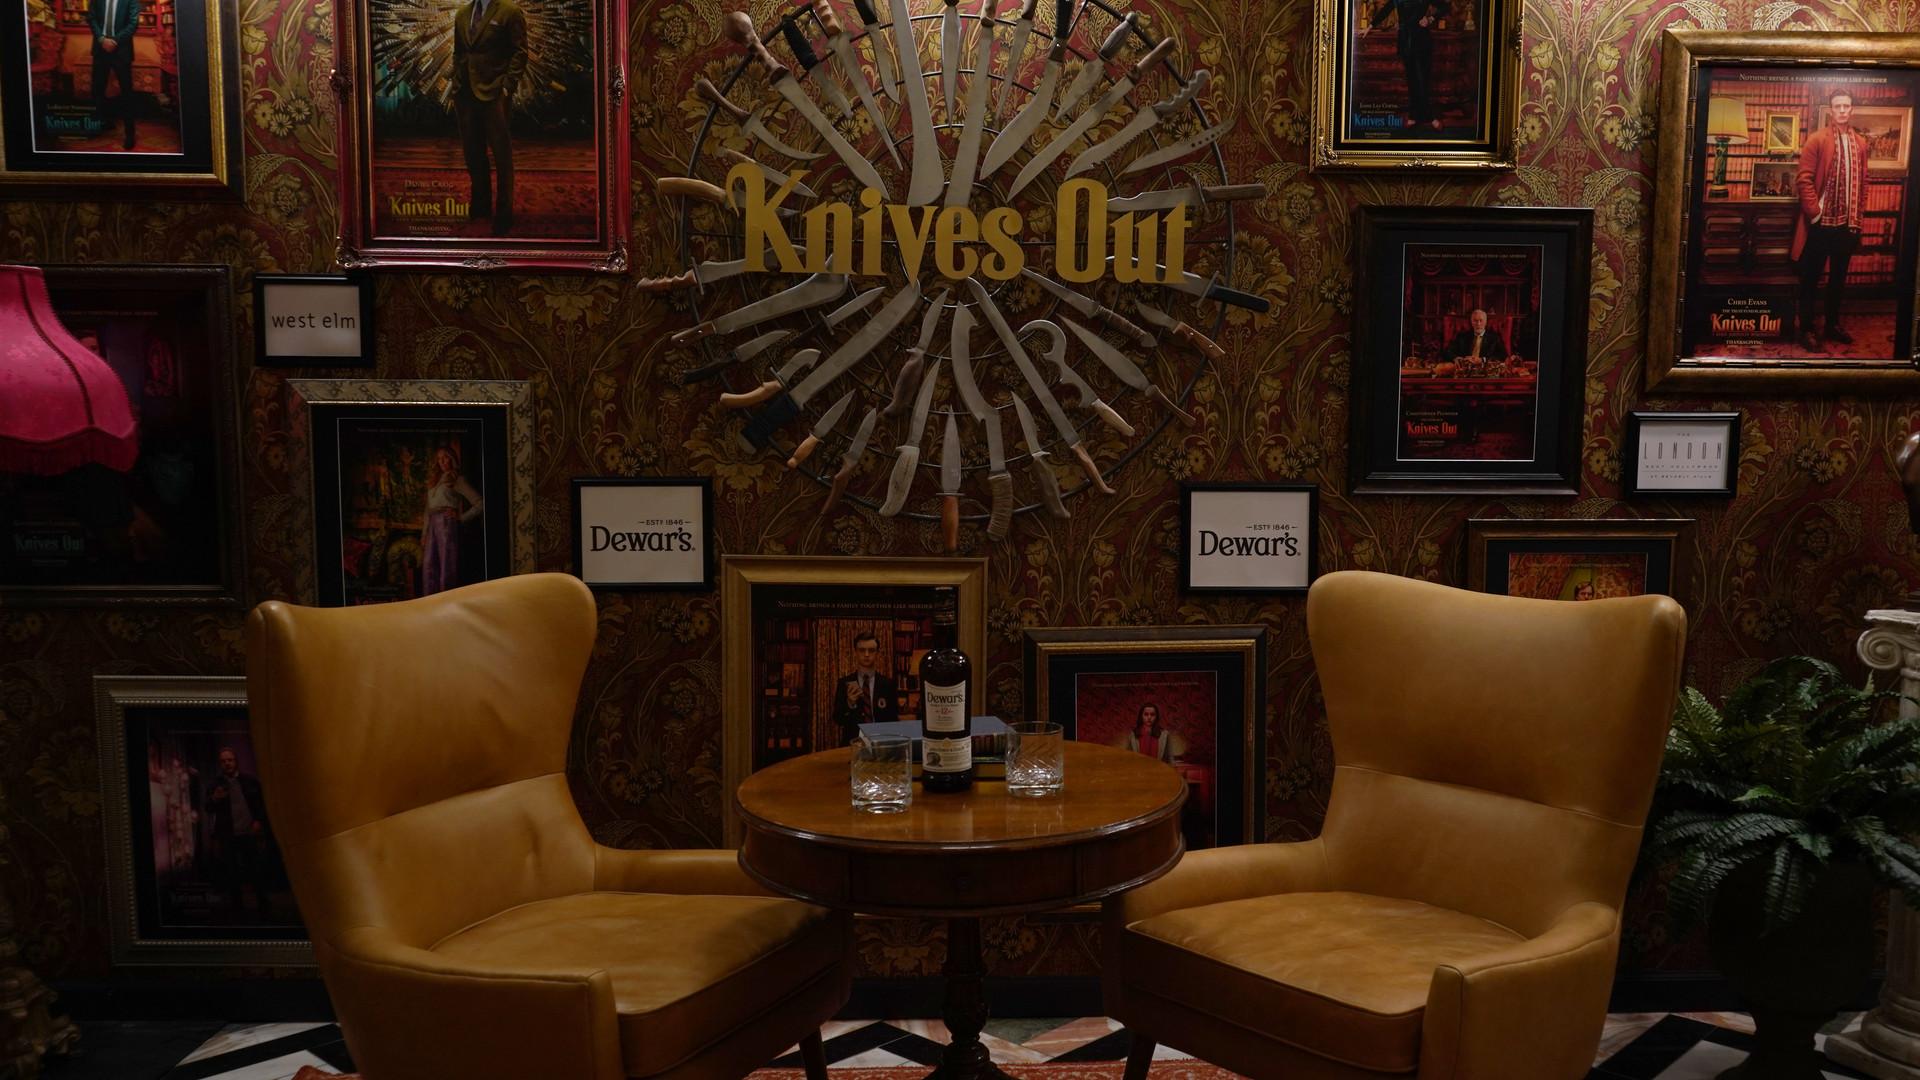 Knives Out Promotional Set